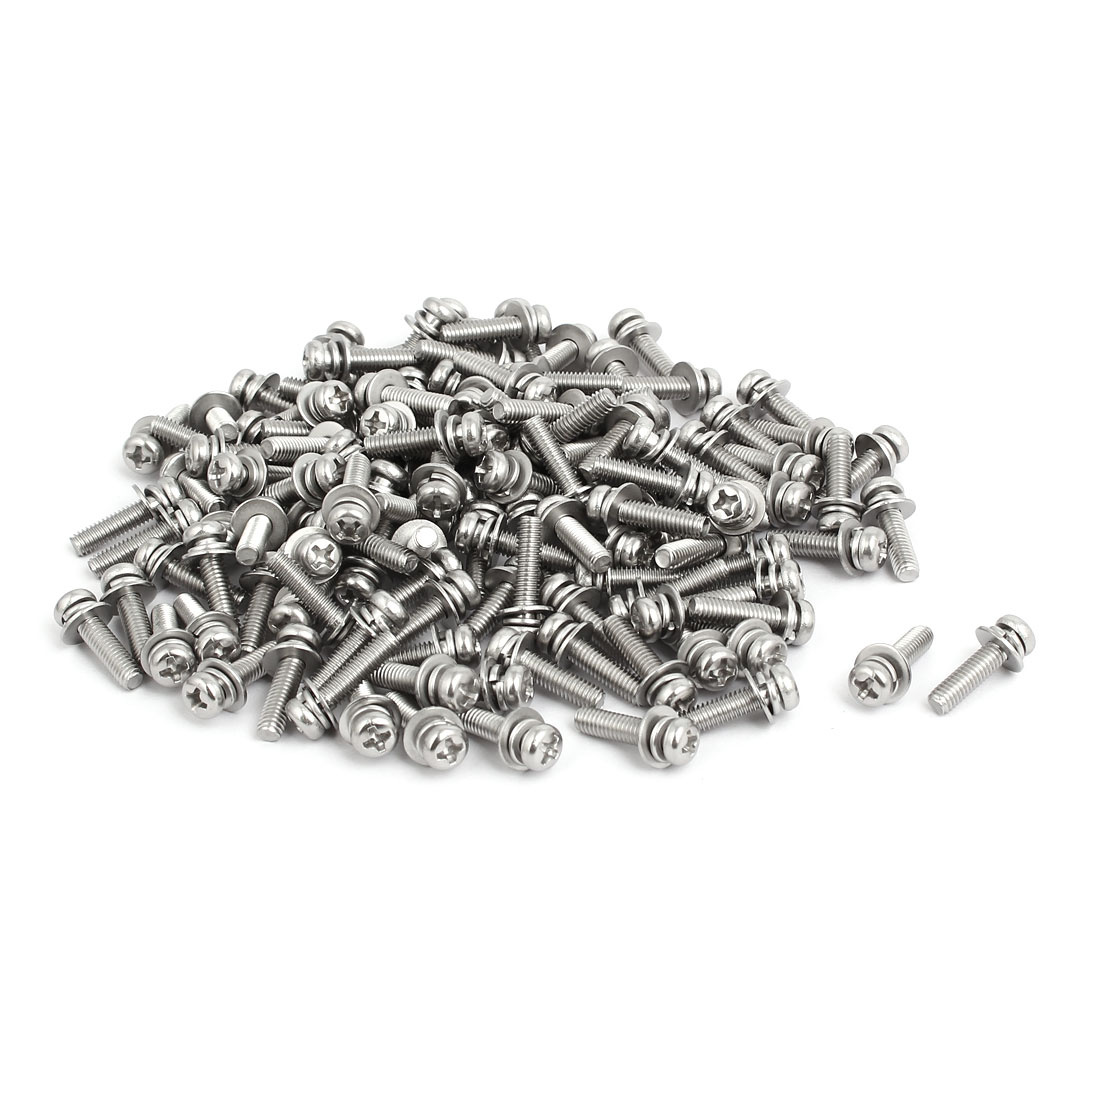 M4x16mm 304 Stainless Steel Phillips Pan Head Bolt Screw w Washer 150 Sets